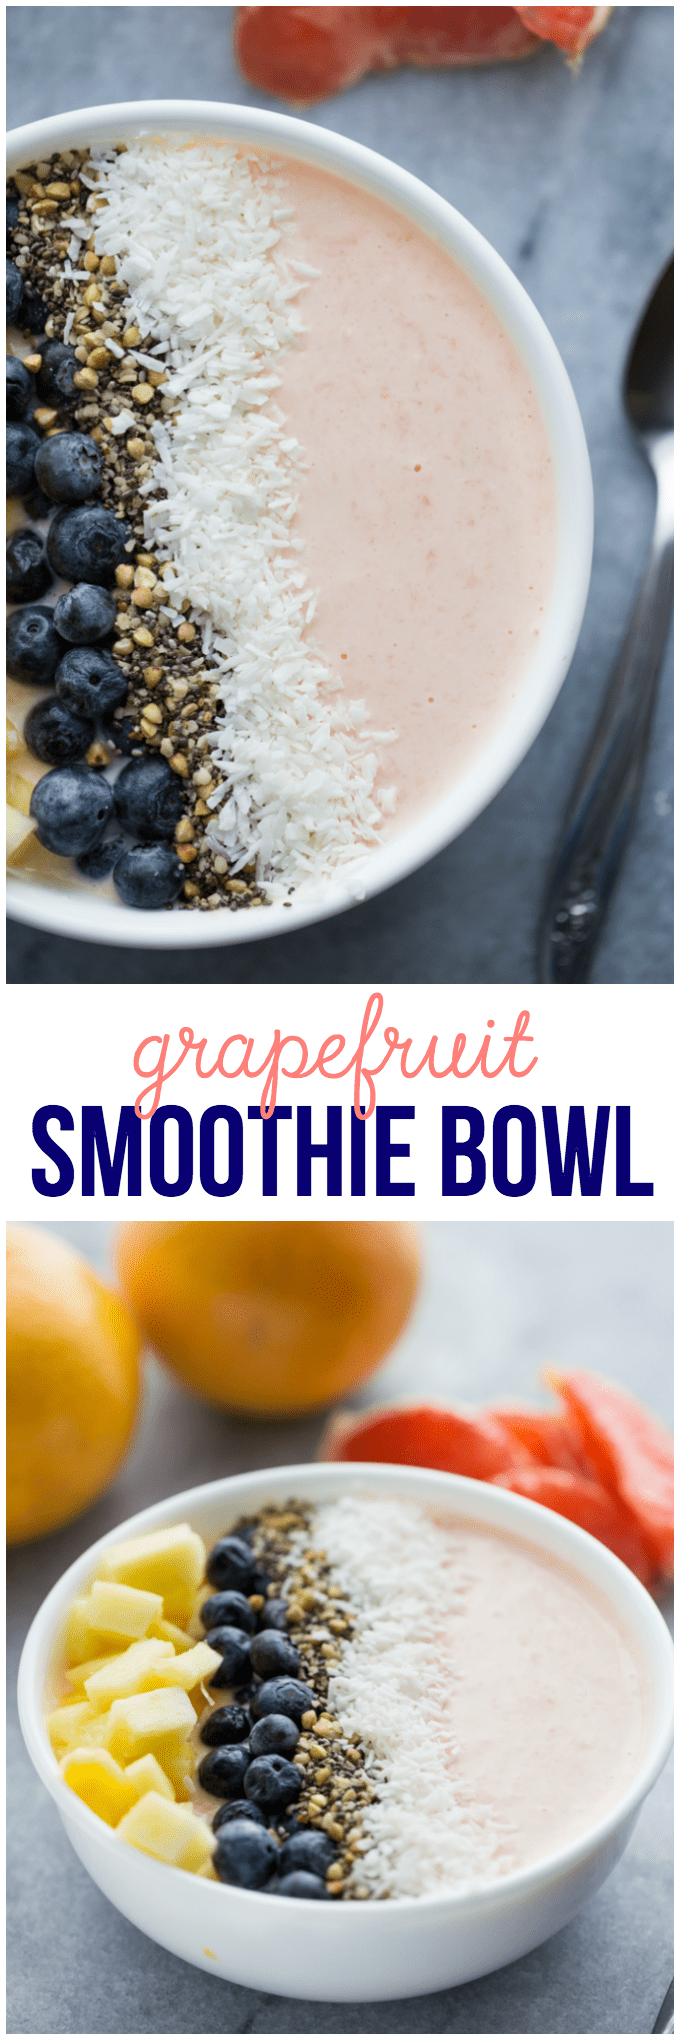 Grapefruit Smoothie Bowl - This easy smoothie bowl recipe is healthy and naturally sweet way to kickstart your mornings. It's made with creamy blend of Sweet Scarletts Texas Red Grapefruit, Greek Yogurt, pineapple and a banana. Top it with some fresh blueberries, seeds and coconut. Yum!